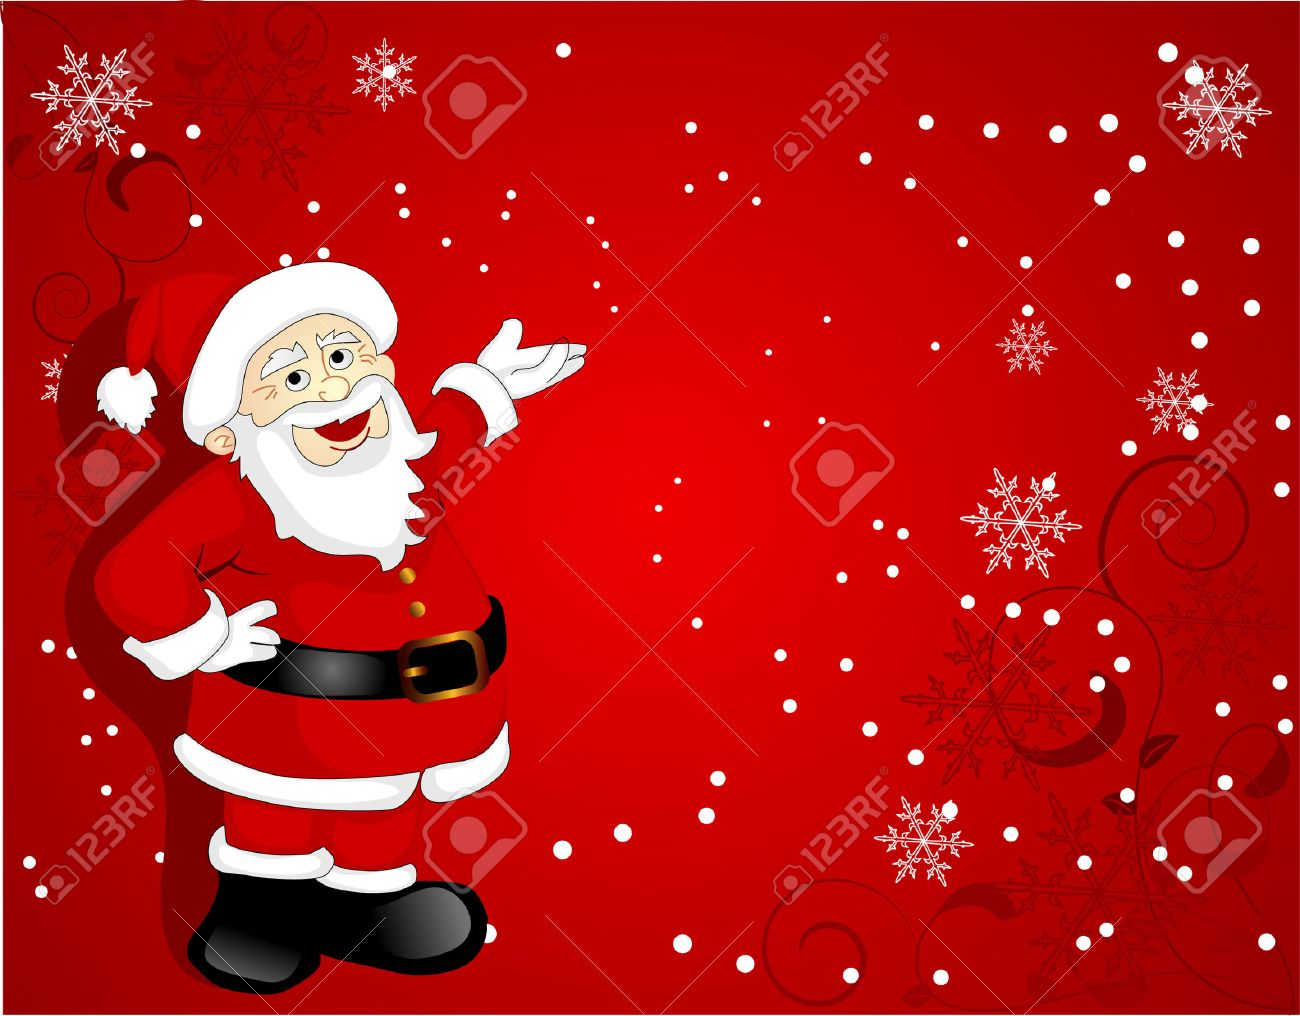 santa clause over red background royalty free cliparts vectors and stock illustration image 3948577 santa clause over red background